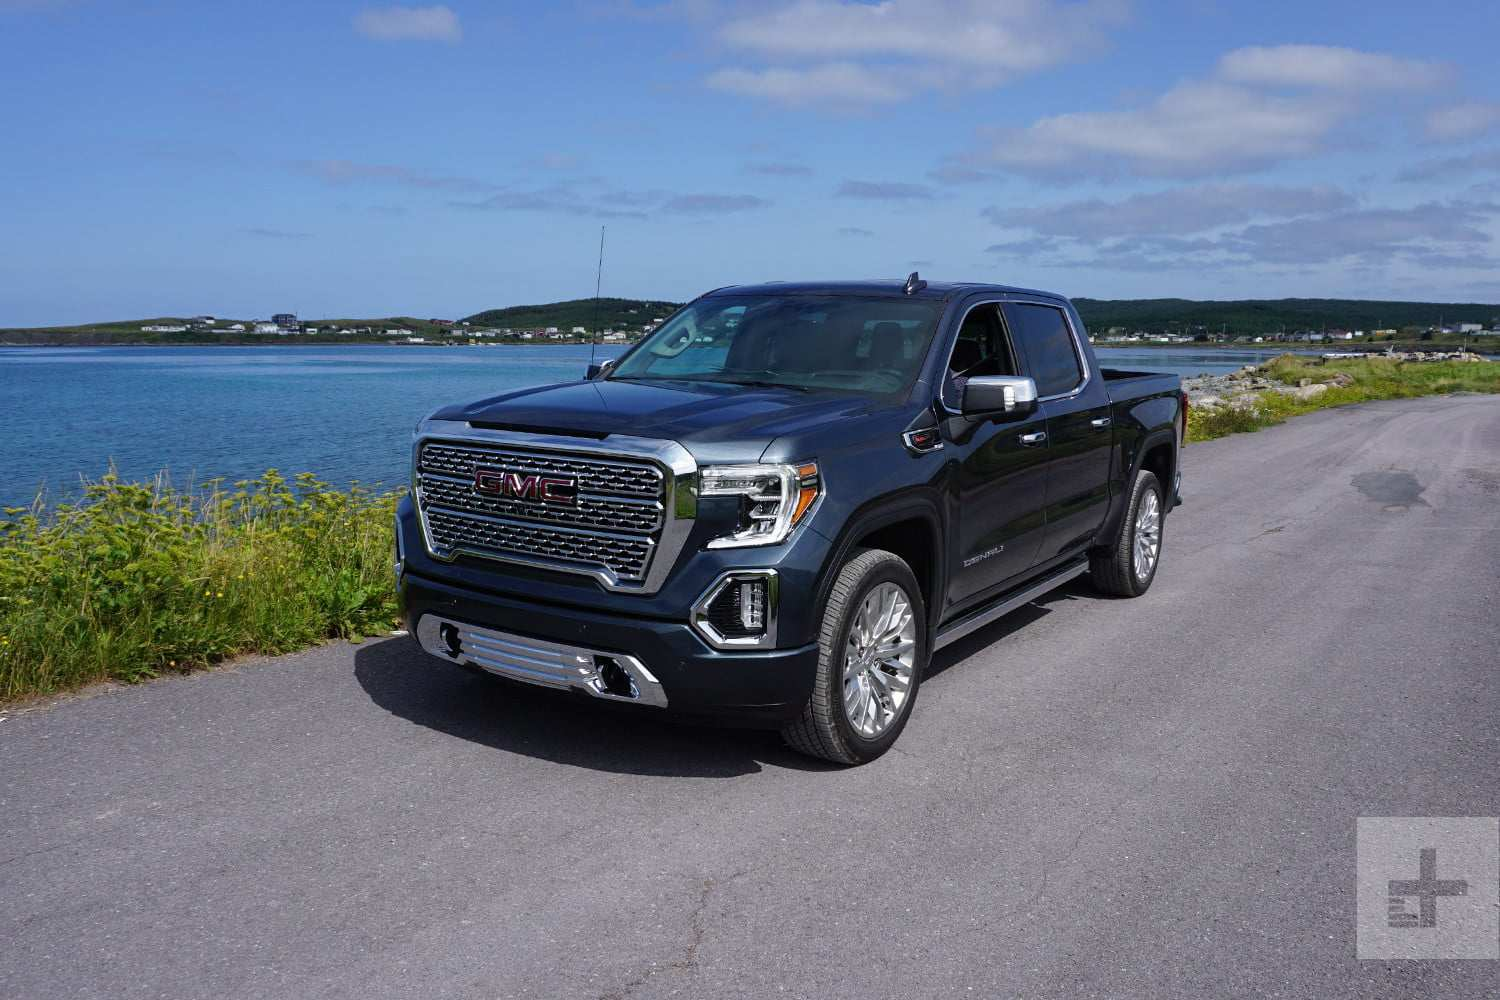 42 A 2019 Gmc Sierra Denali 1500 Hd Redesign And Concept